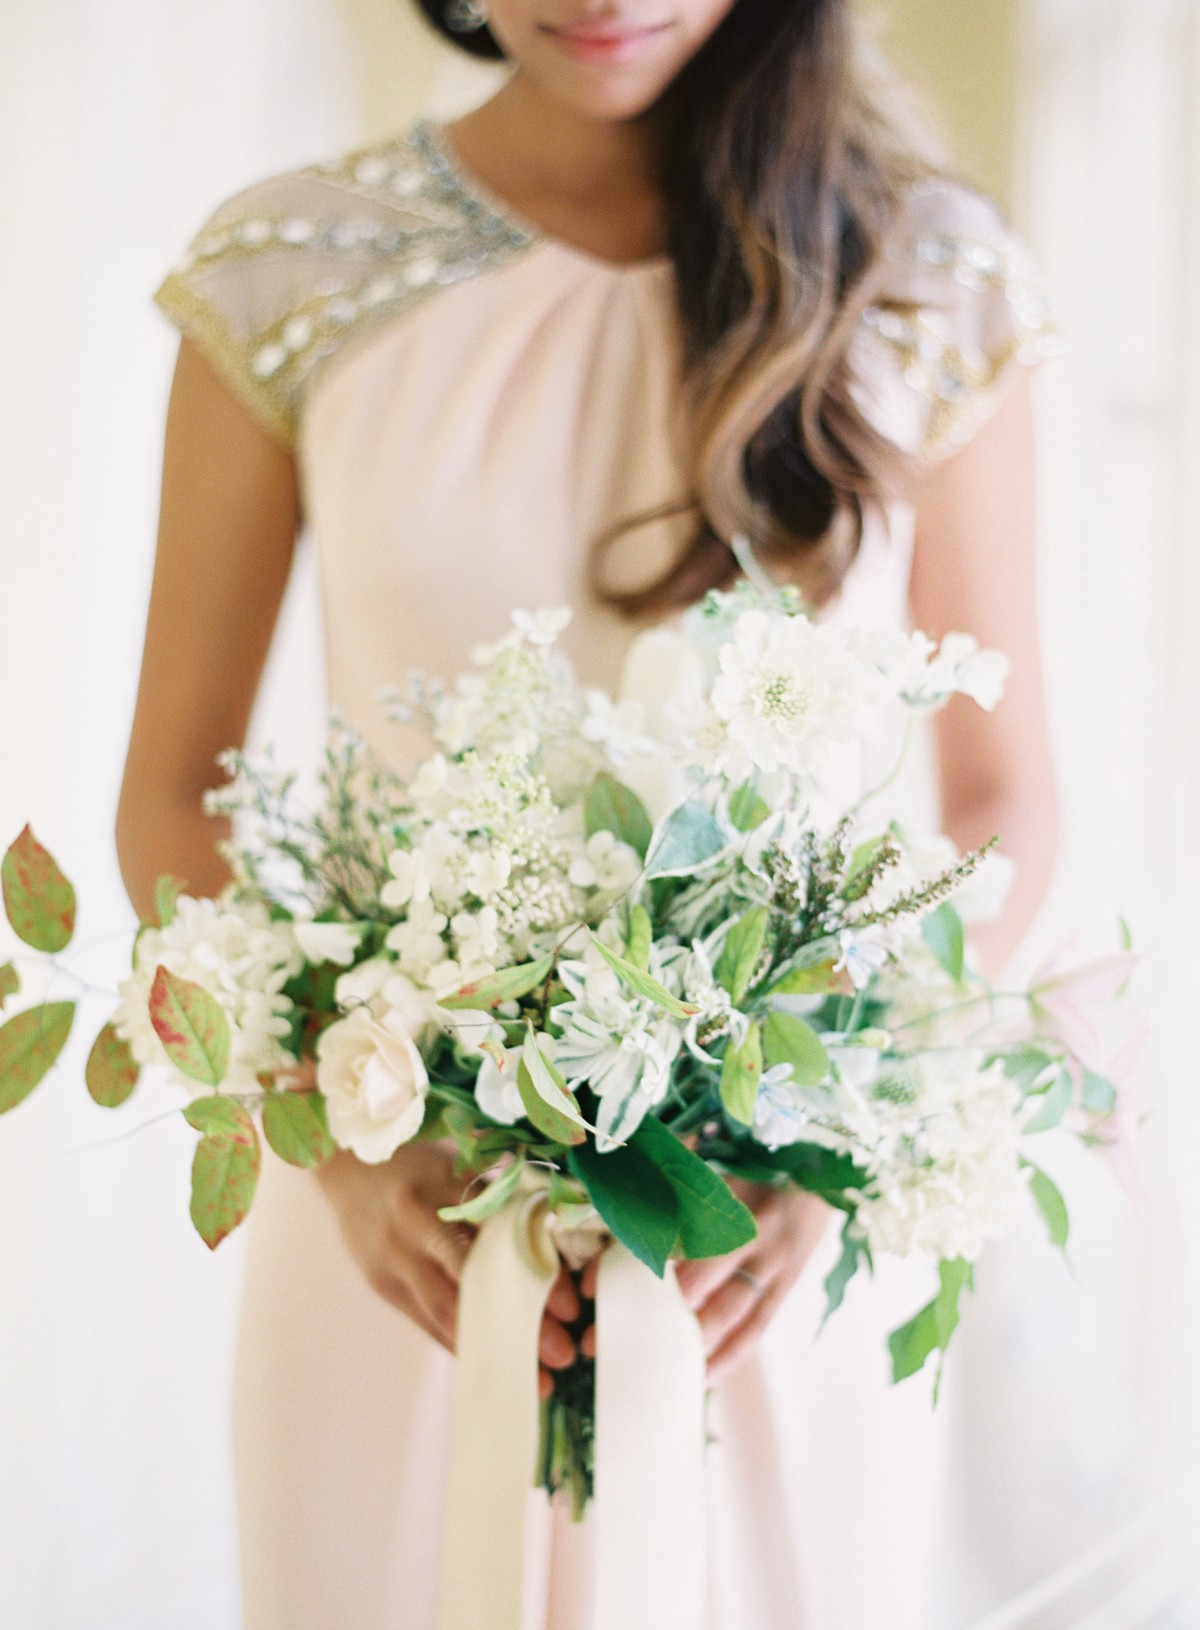 Loose White And Green Bridal Bouquet 2